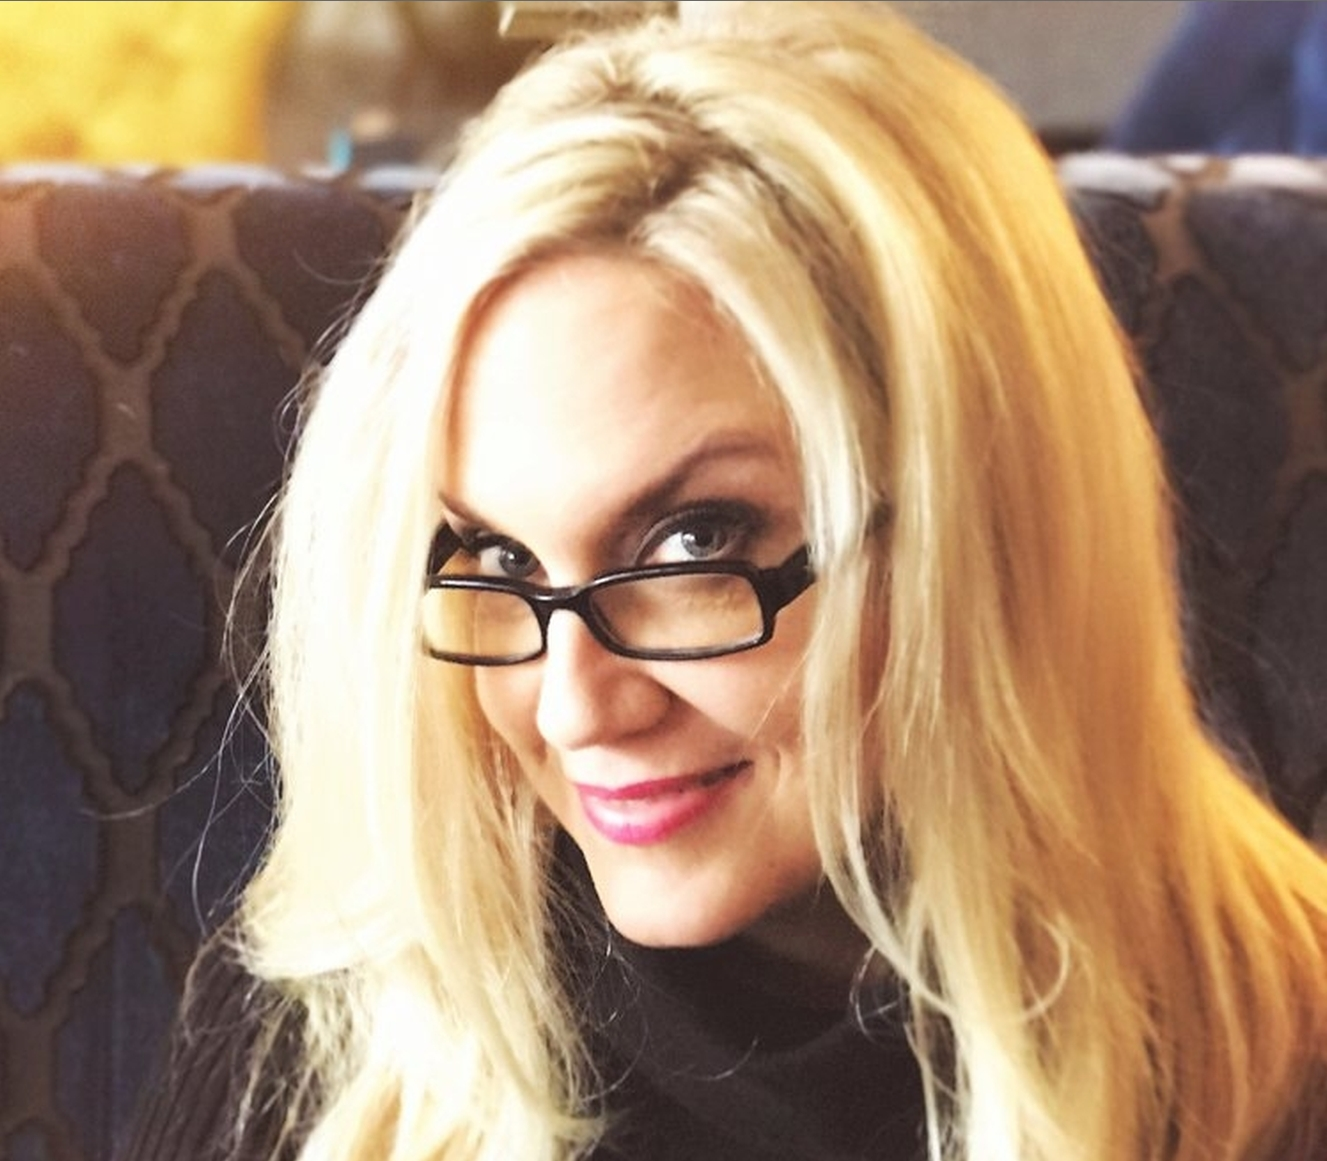 Photo of Brenda Romero from the shoulders up, looking over the top edge of her glasses and smiling.